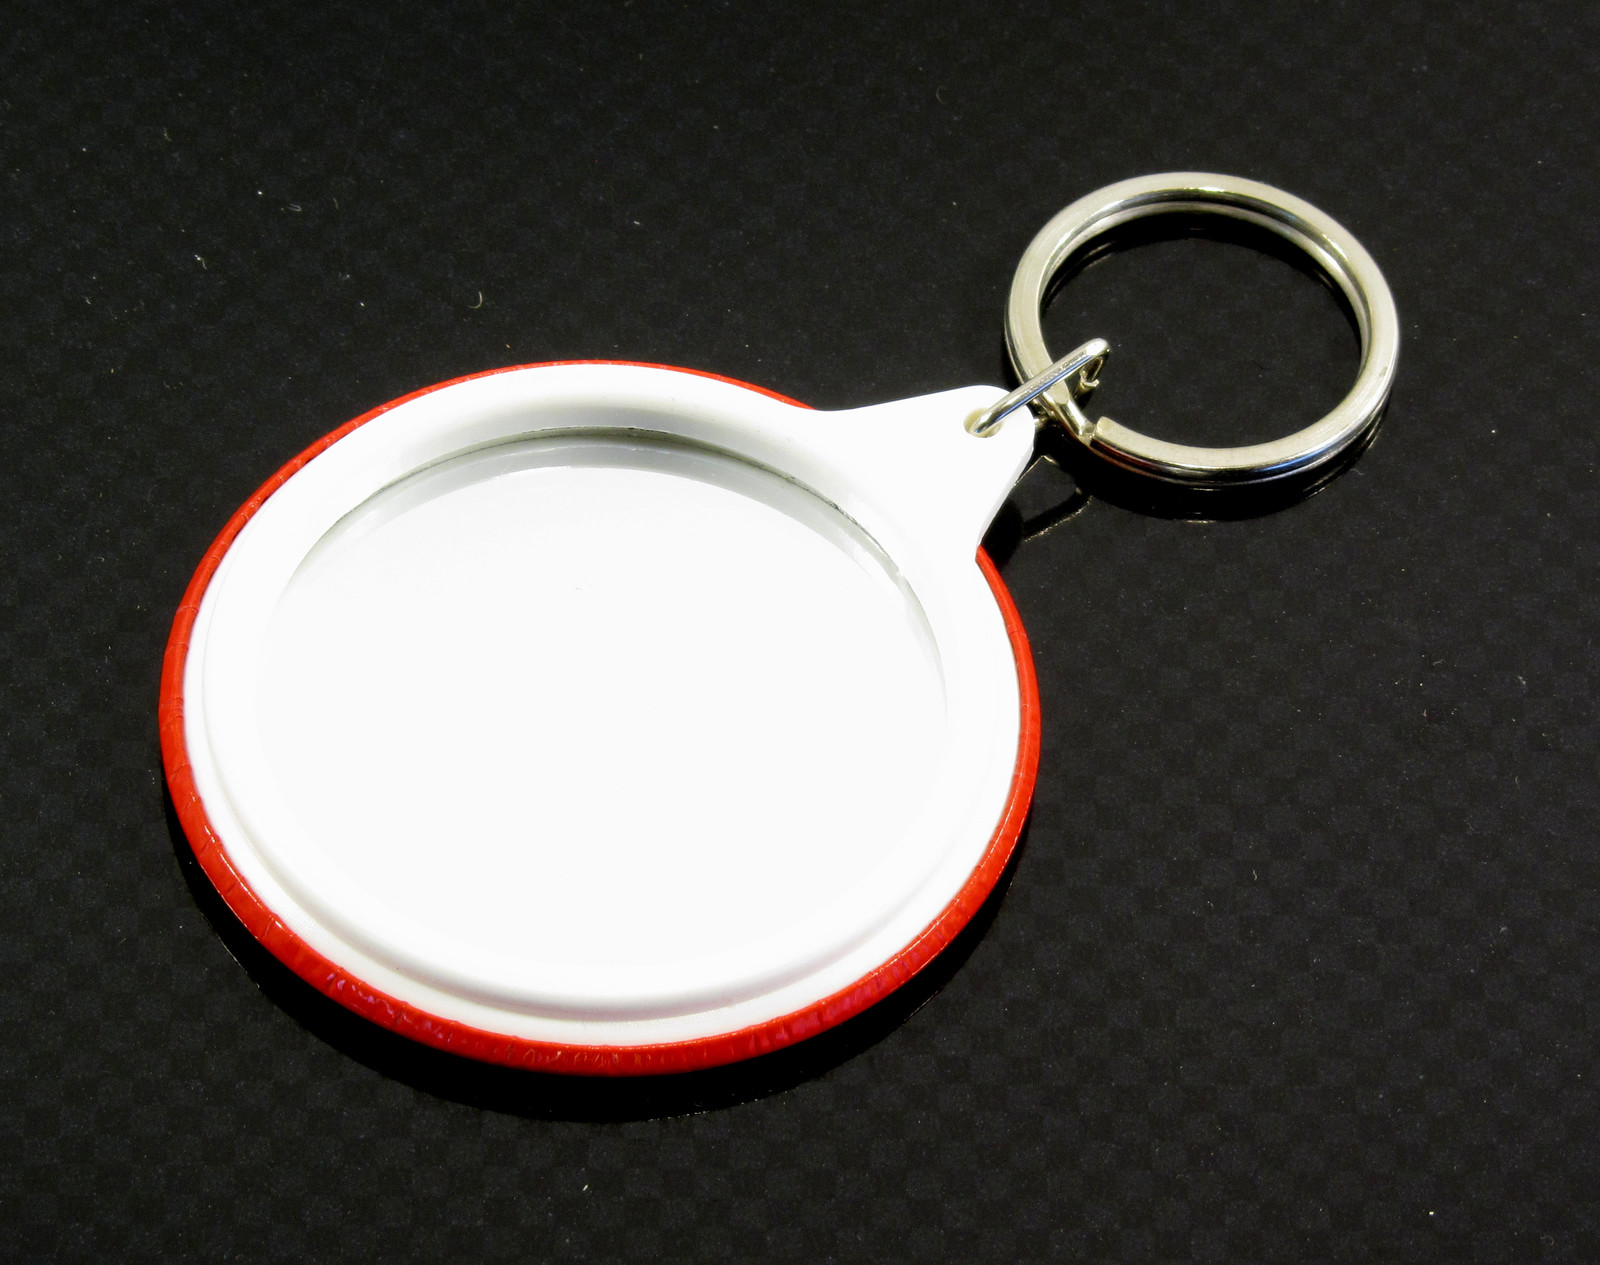 58 mm mirror badge key ring, just add your artwork to the front!